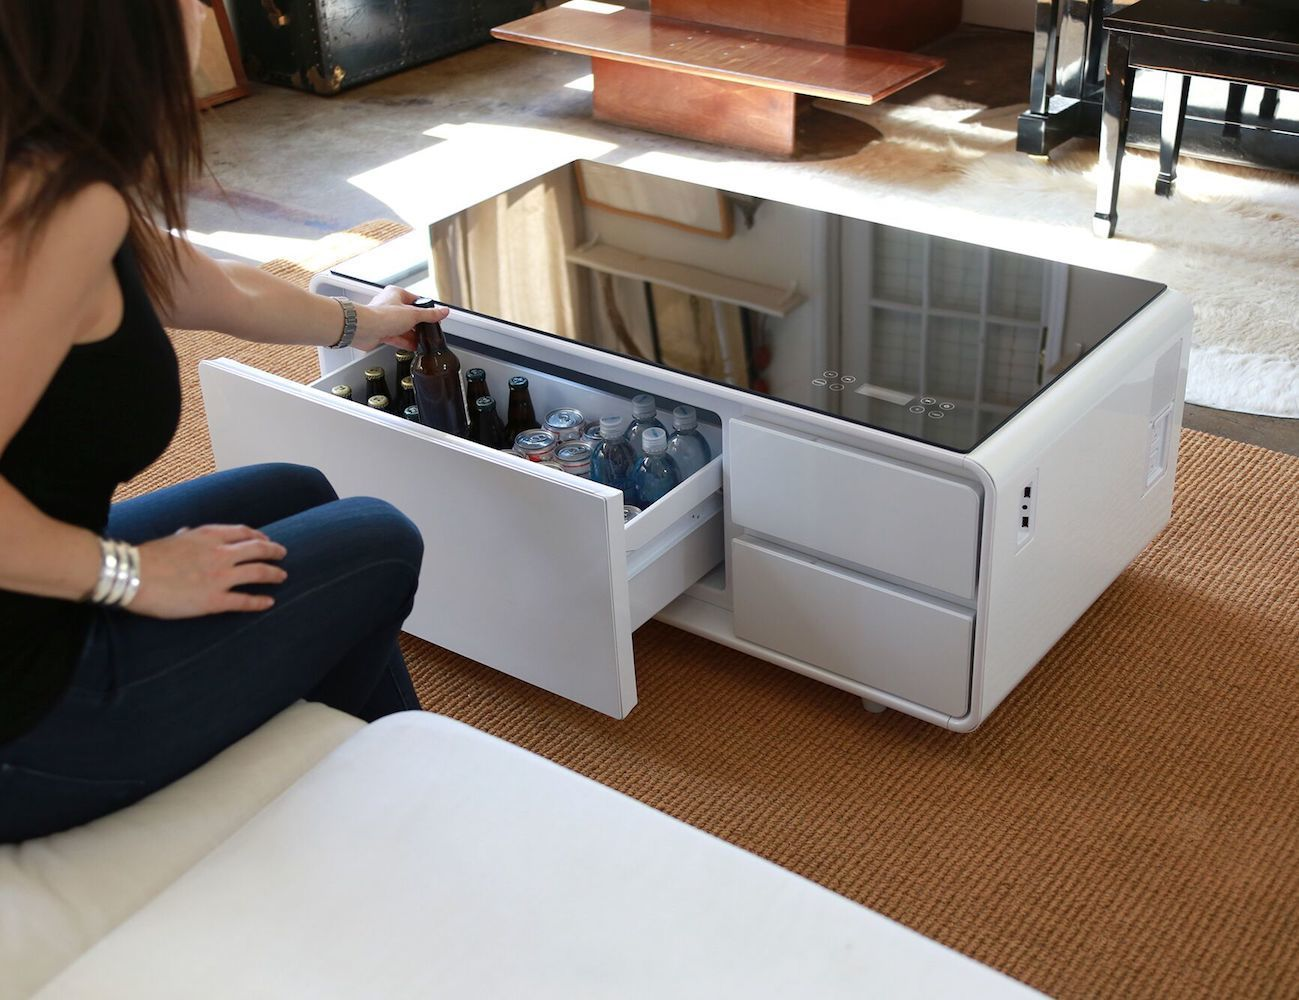 This modern furniture is complete with a refrigerator